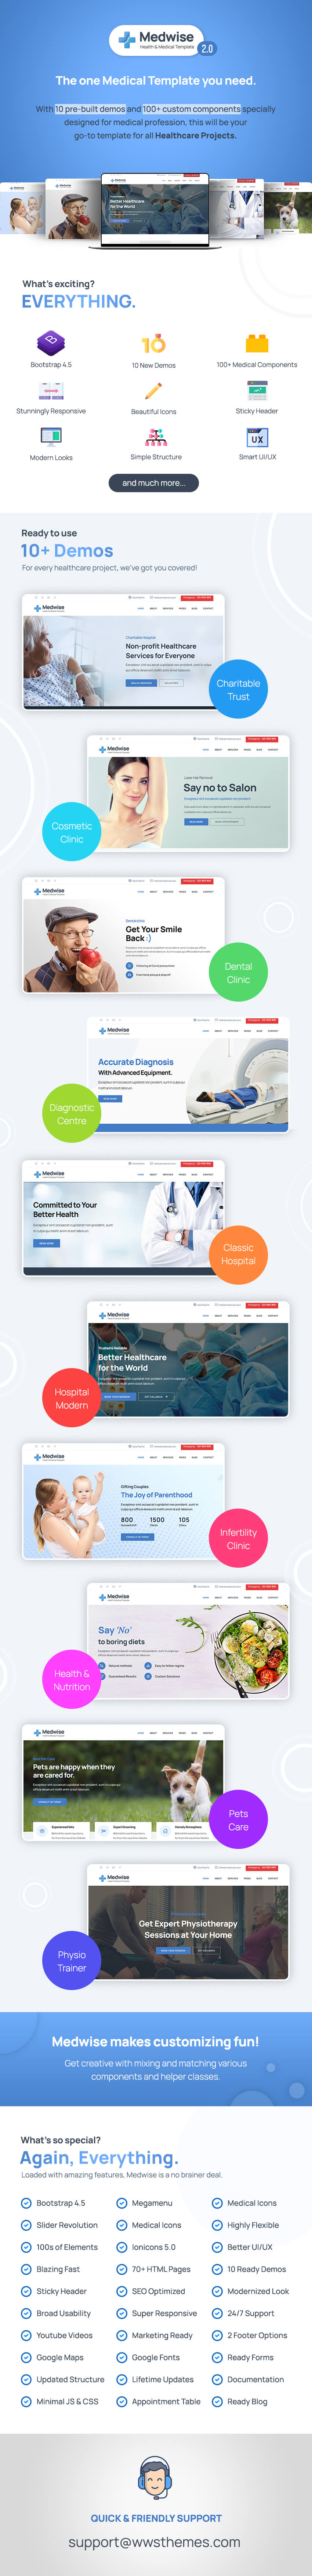 Medwise - Healthcare & Medical Bootstrap Template - 2